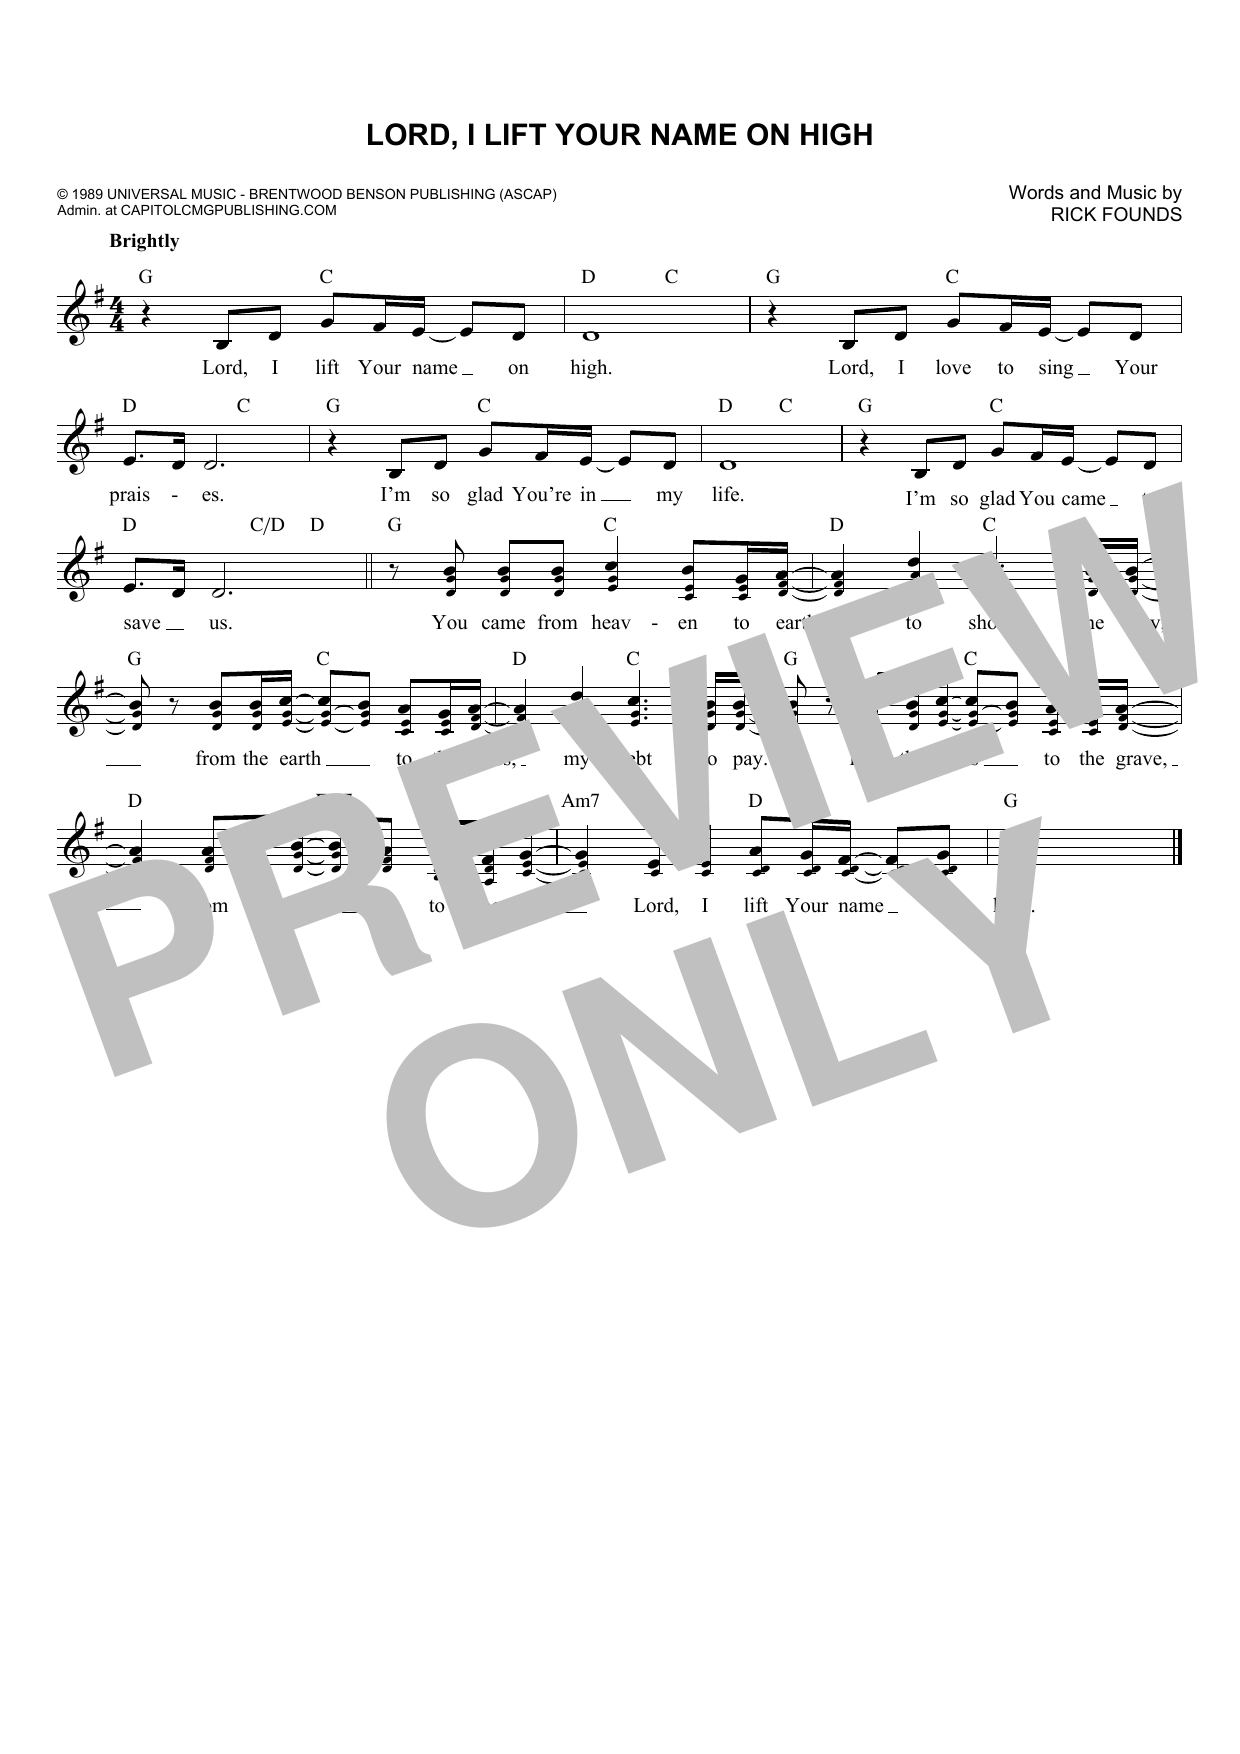 Lord I Lift Your Name On High Chords Rick Founds Lord I Lift Your Name On High Sheet Music Notes Chords Download Printable Melody Line Lyrics Chords Sku 180119